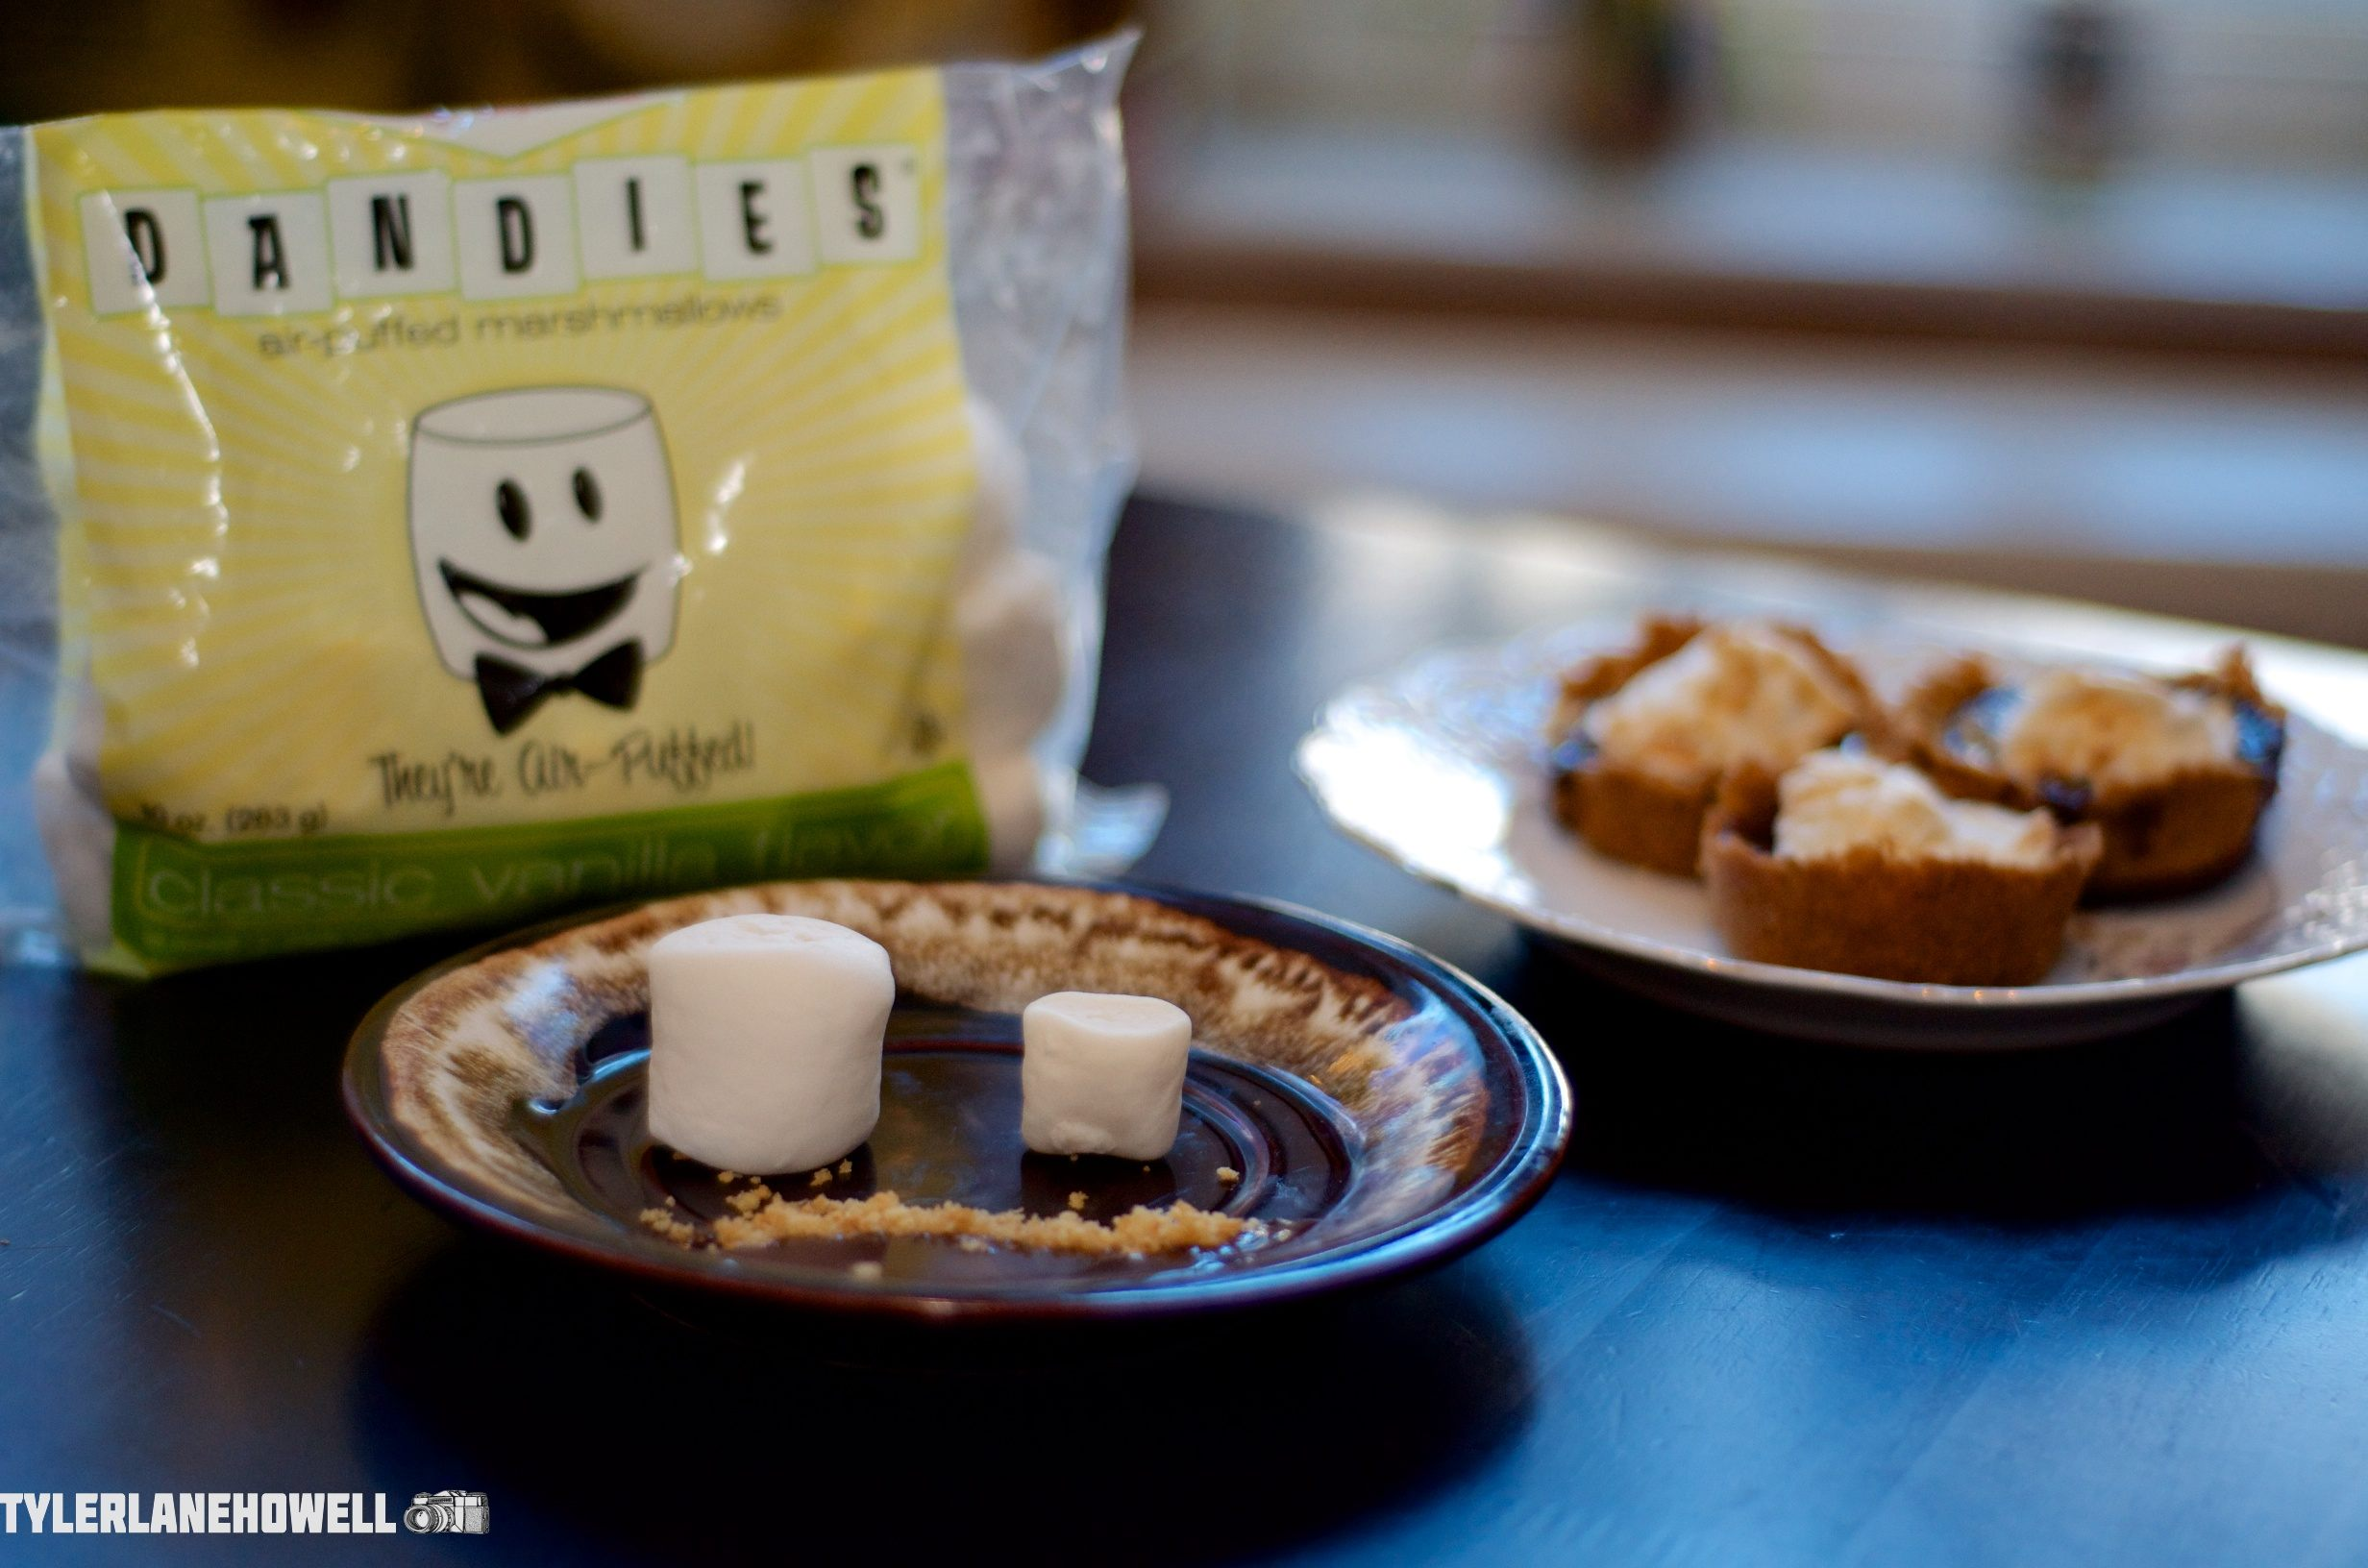 Dandies S'Mores dessert Vegan marshmallows